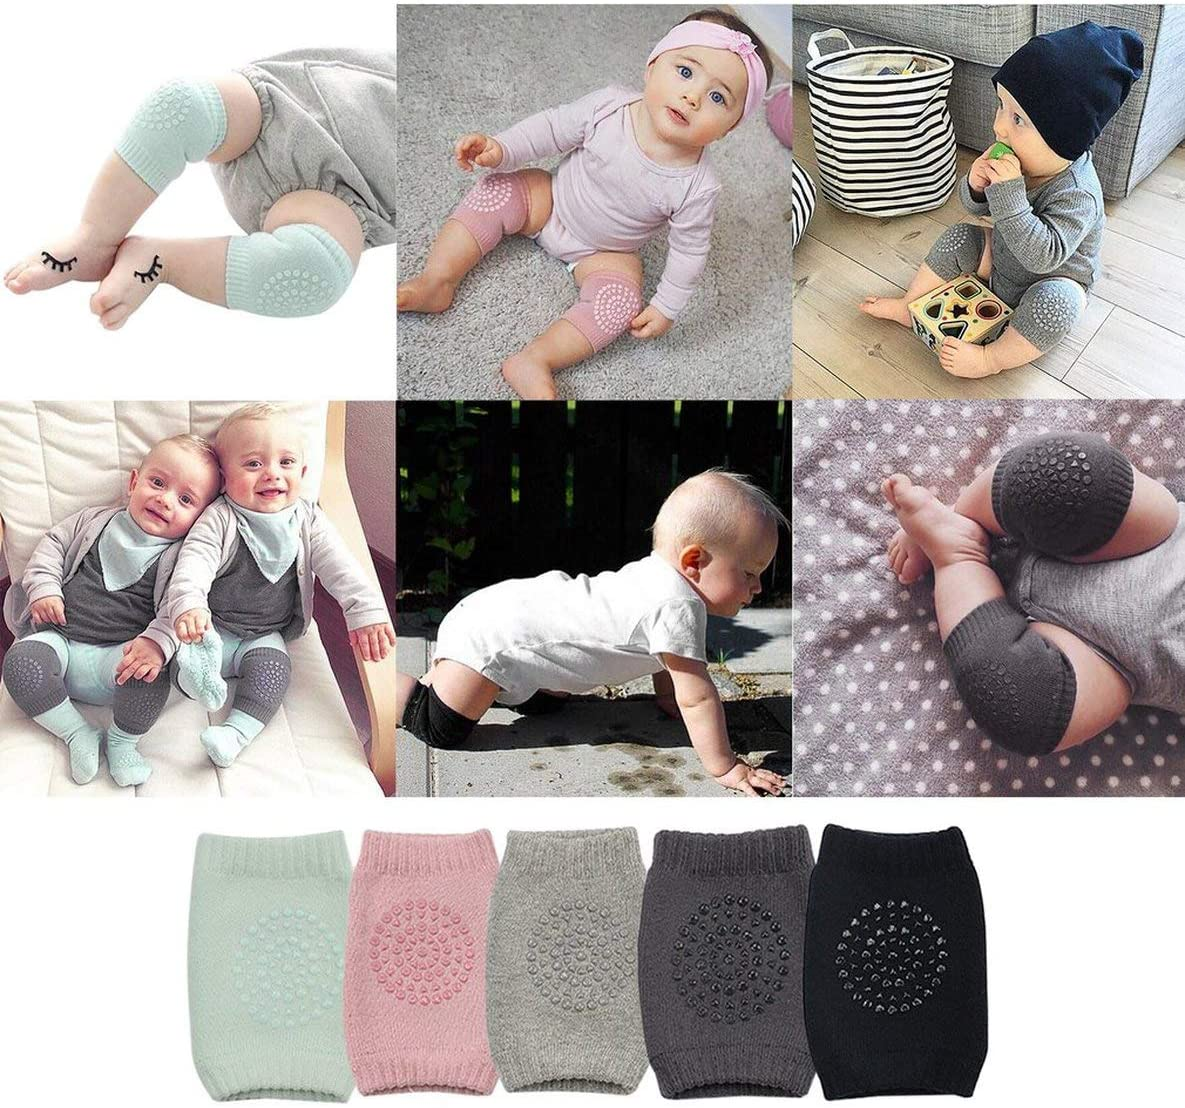 Rouku Toddler Kids Kneepad Protector Thickened Terry Non-Slip Safety Crawling Baby Leg Warmers Knee Pads Unisex For Child